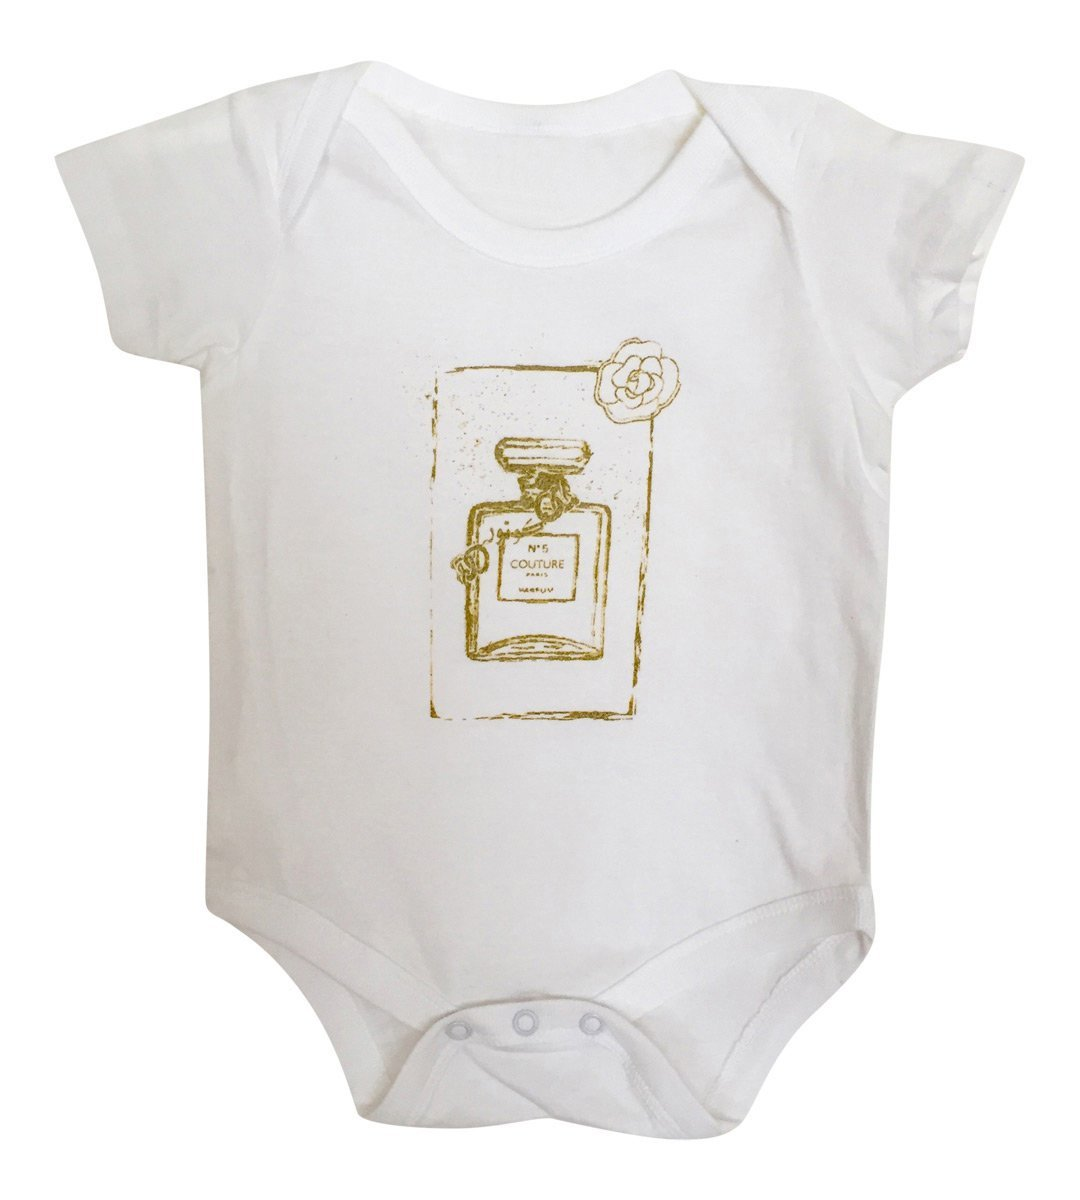 Baby - Baby Couture Perfume Bottle Onesie  - White